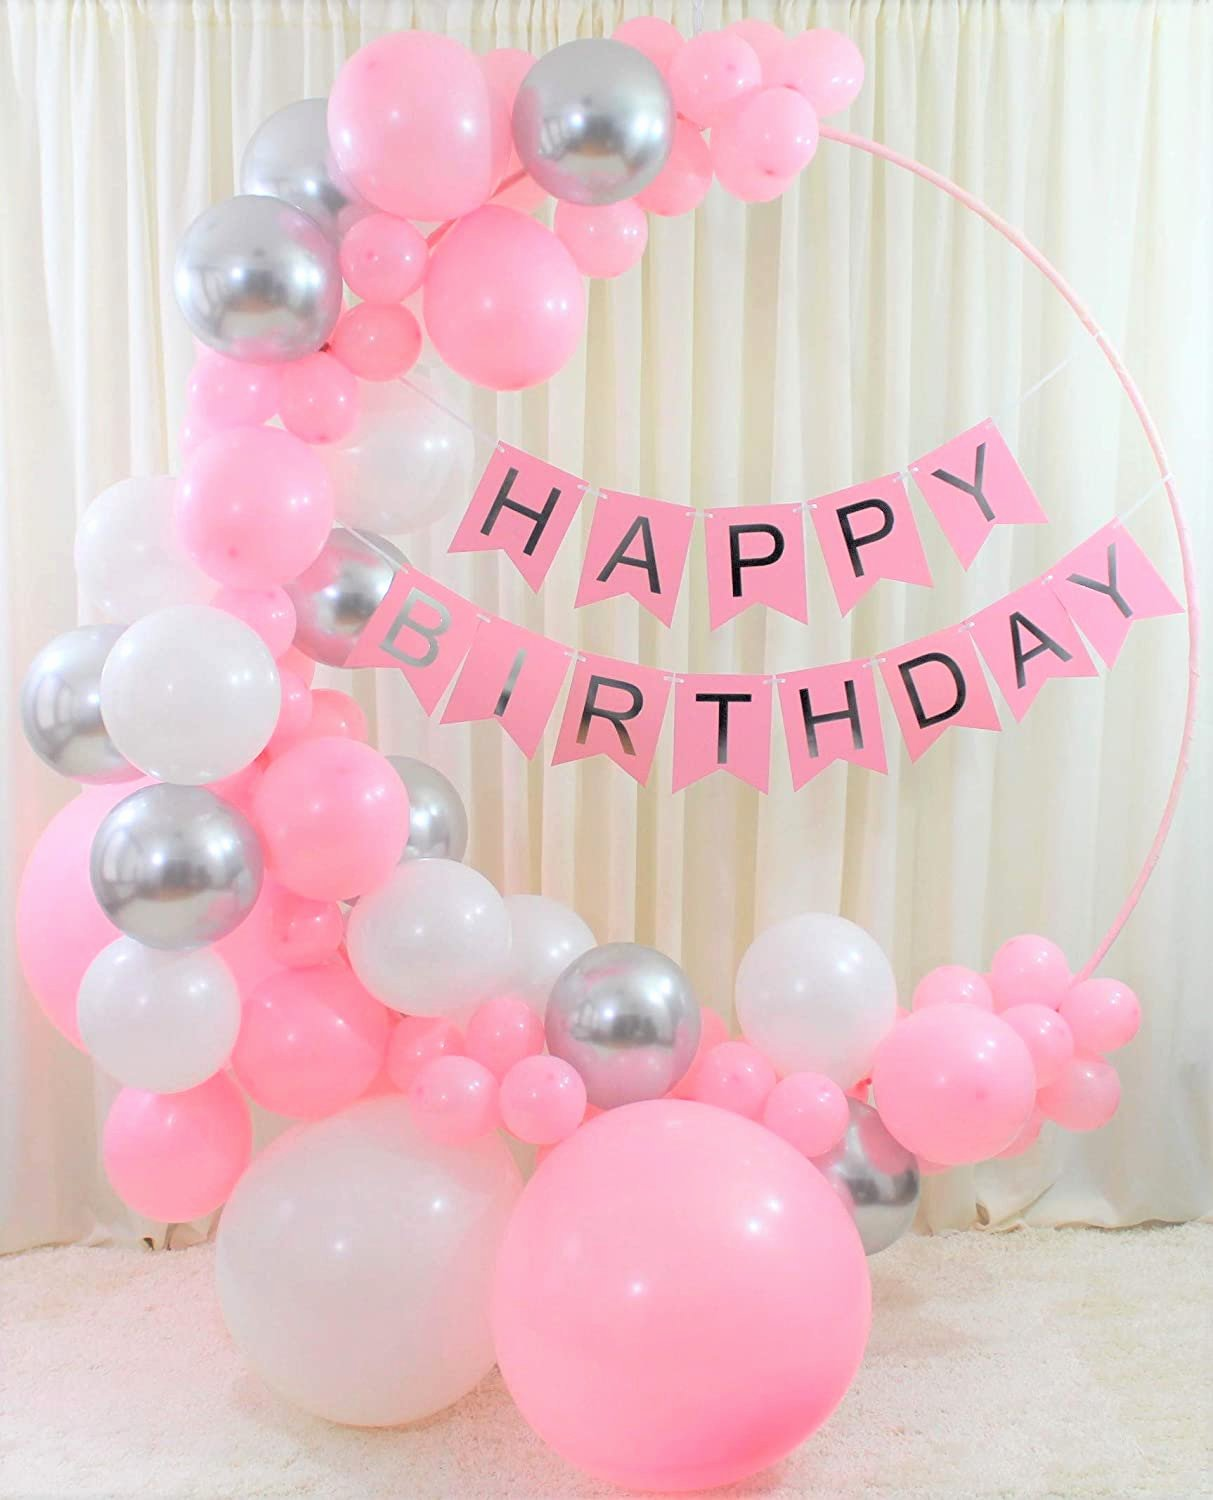 Happy Birthday Decoration Ideas at Home Beautiful Qutechat Happy Birthday Decorations for Women and Girls 88 Pink White and Silver Balloons Lovely Banner with White Ribbon Diy tool Kit for